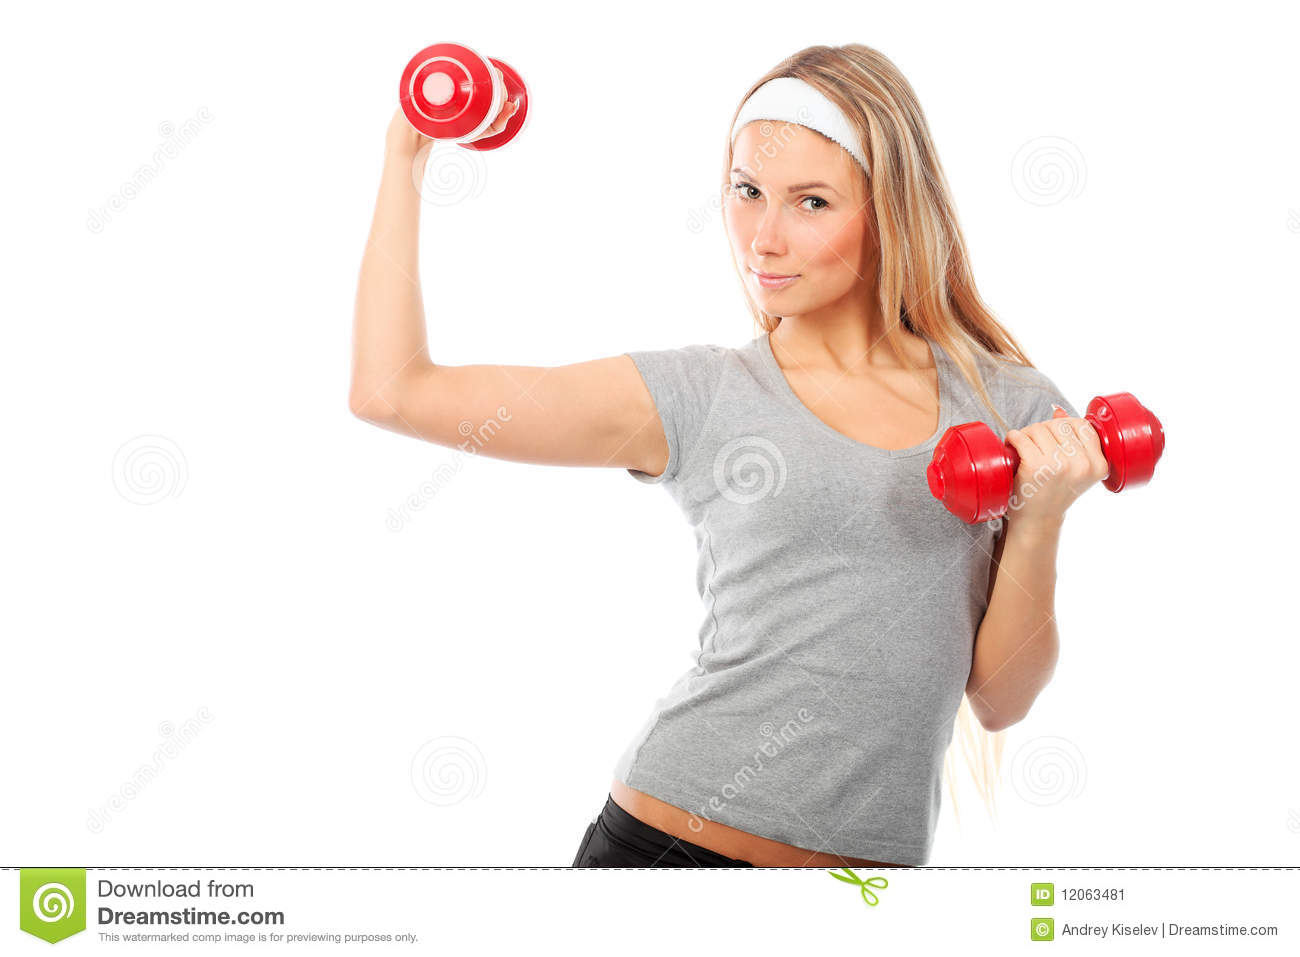 Healthy Body Stock Image - Image: 12063481